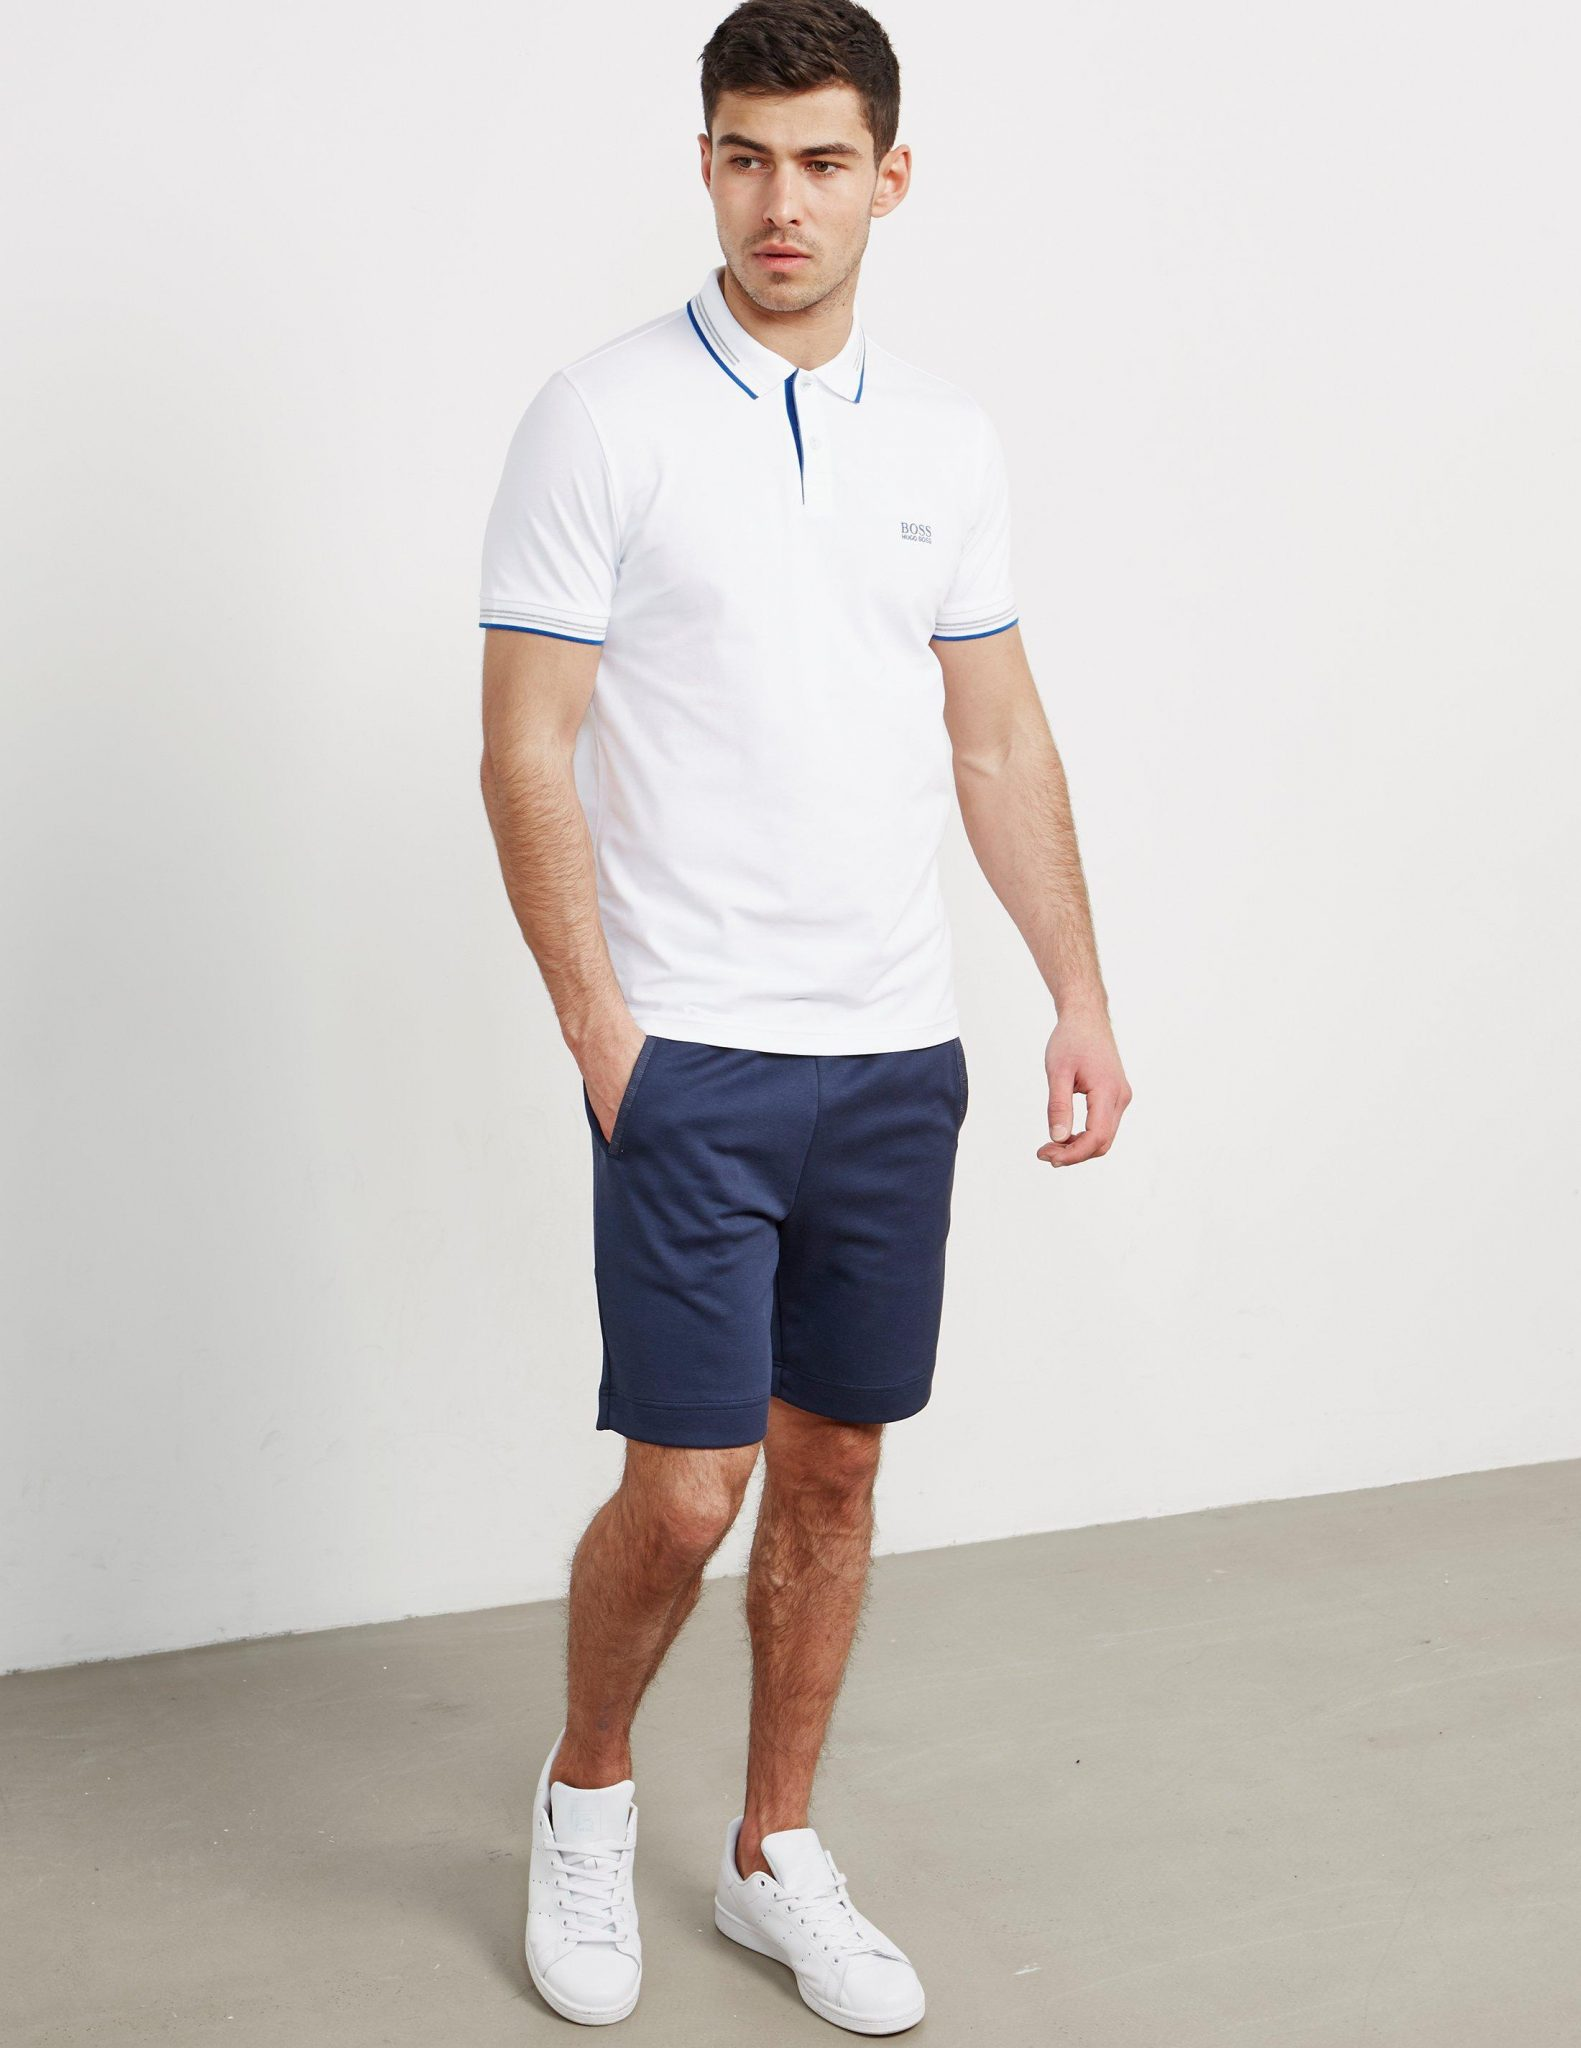 outfits with polo shirts Shop Clothing & Shoes Online